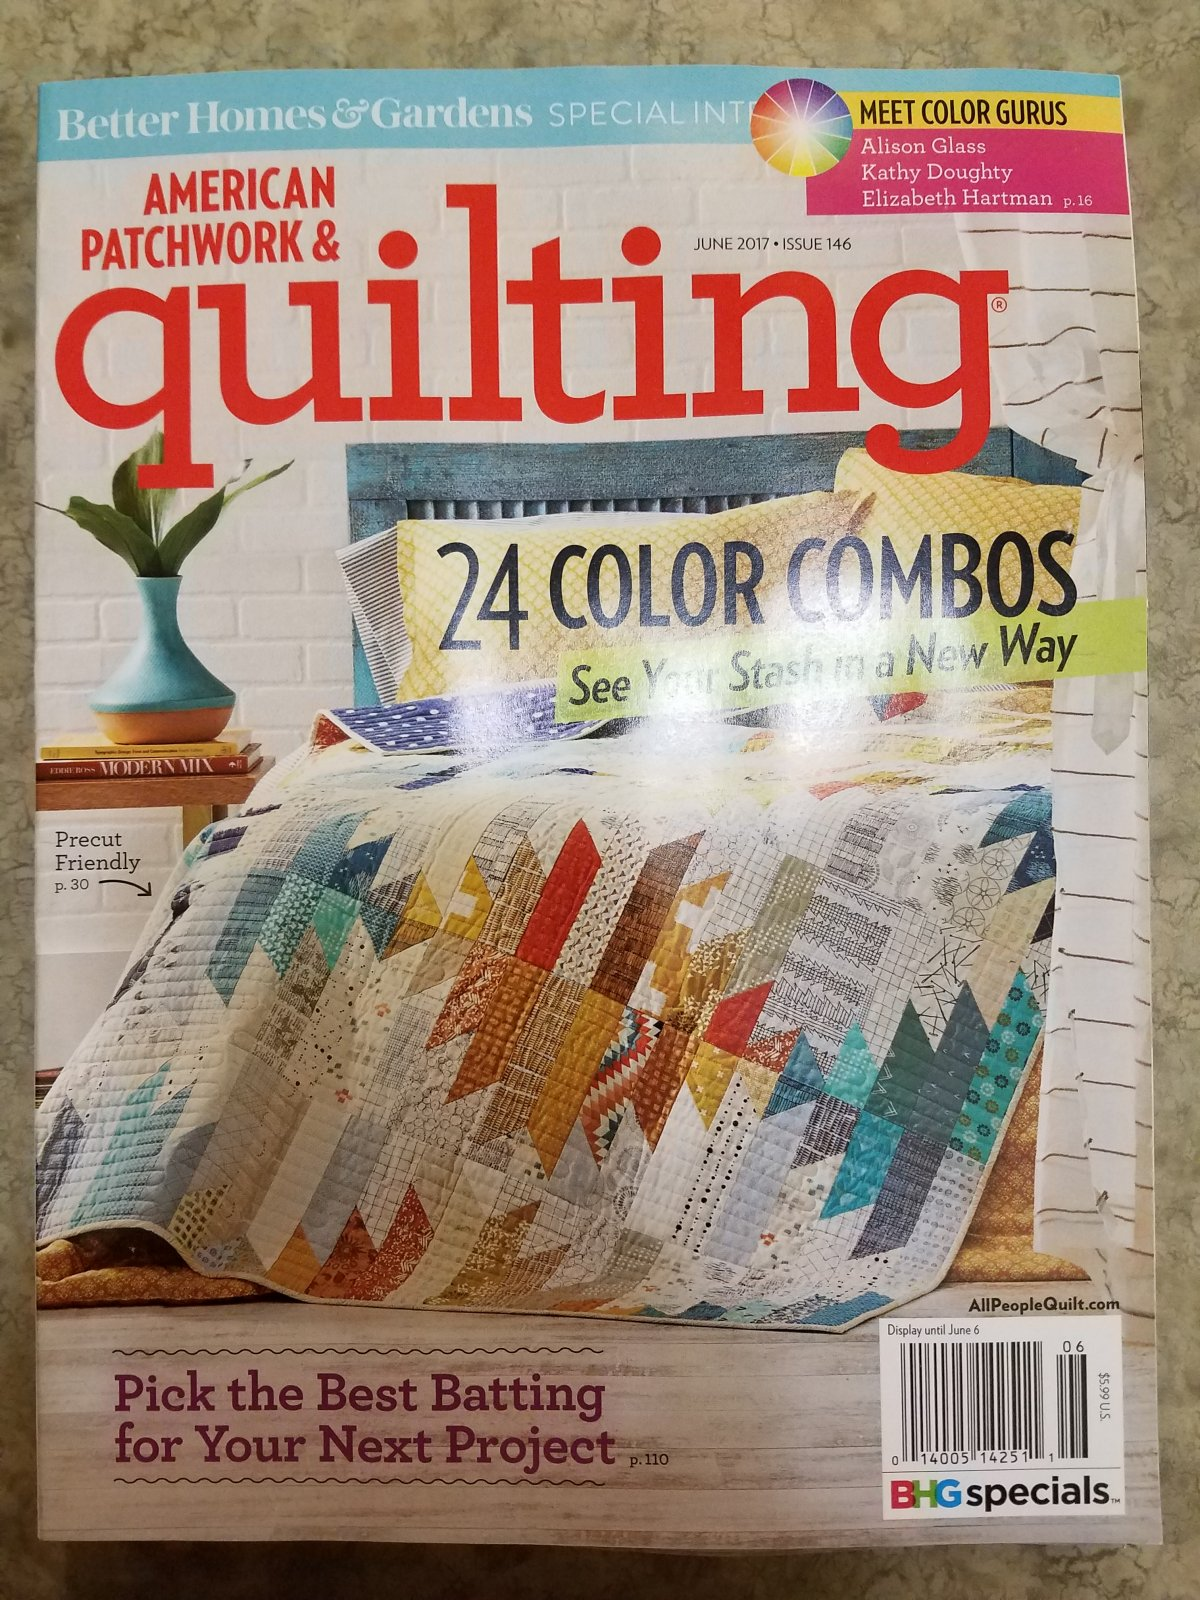 issue new or for and on inspiration dwr american of latest main i from project just found the street will quilt apq that take as patchwork short forever started quilting in june